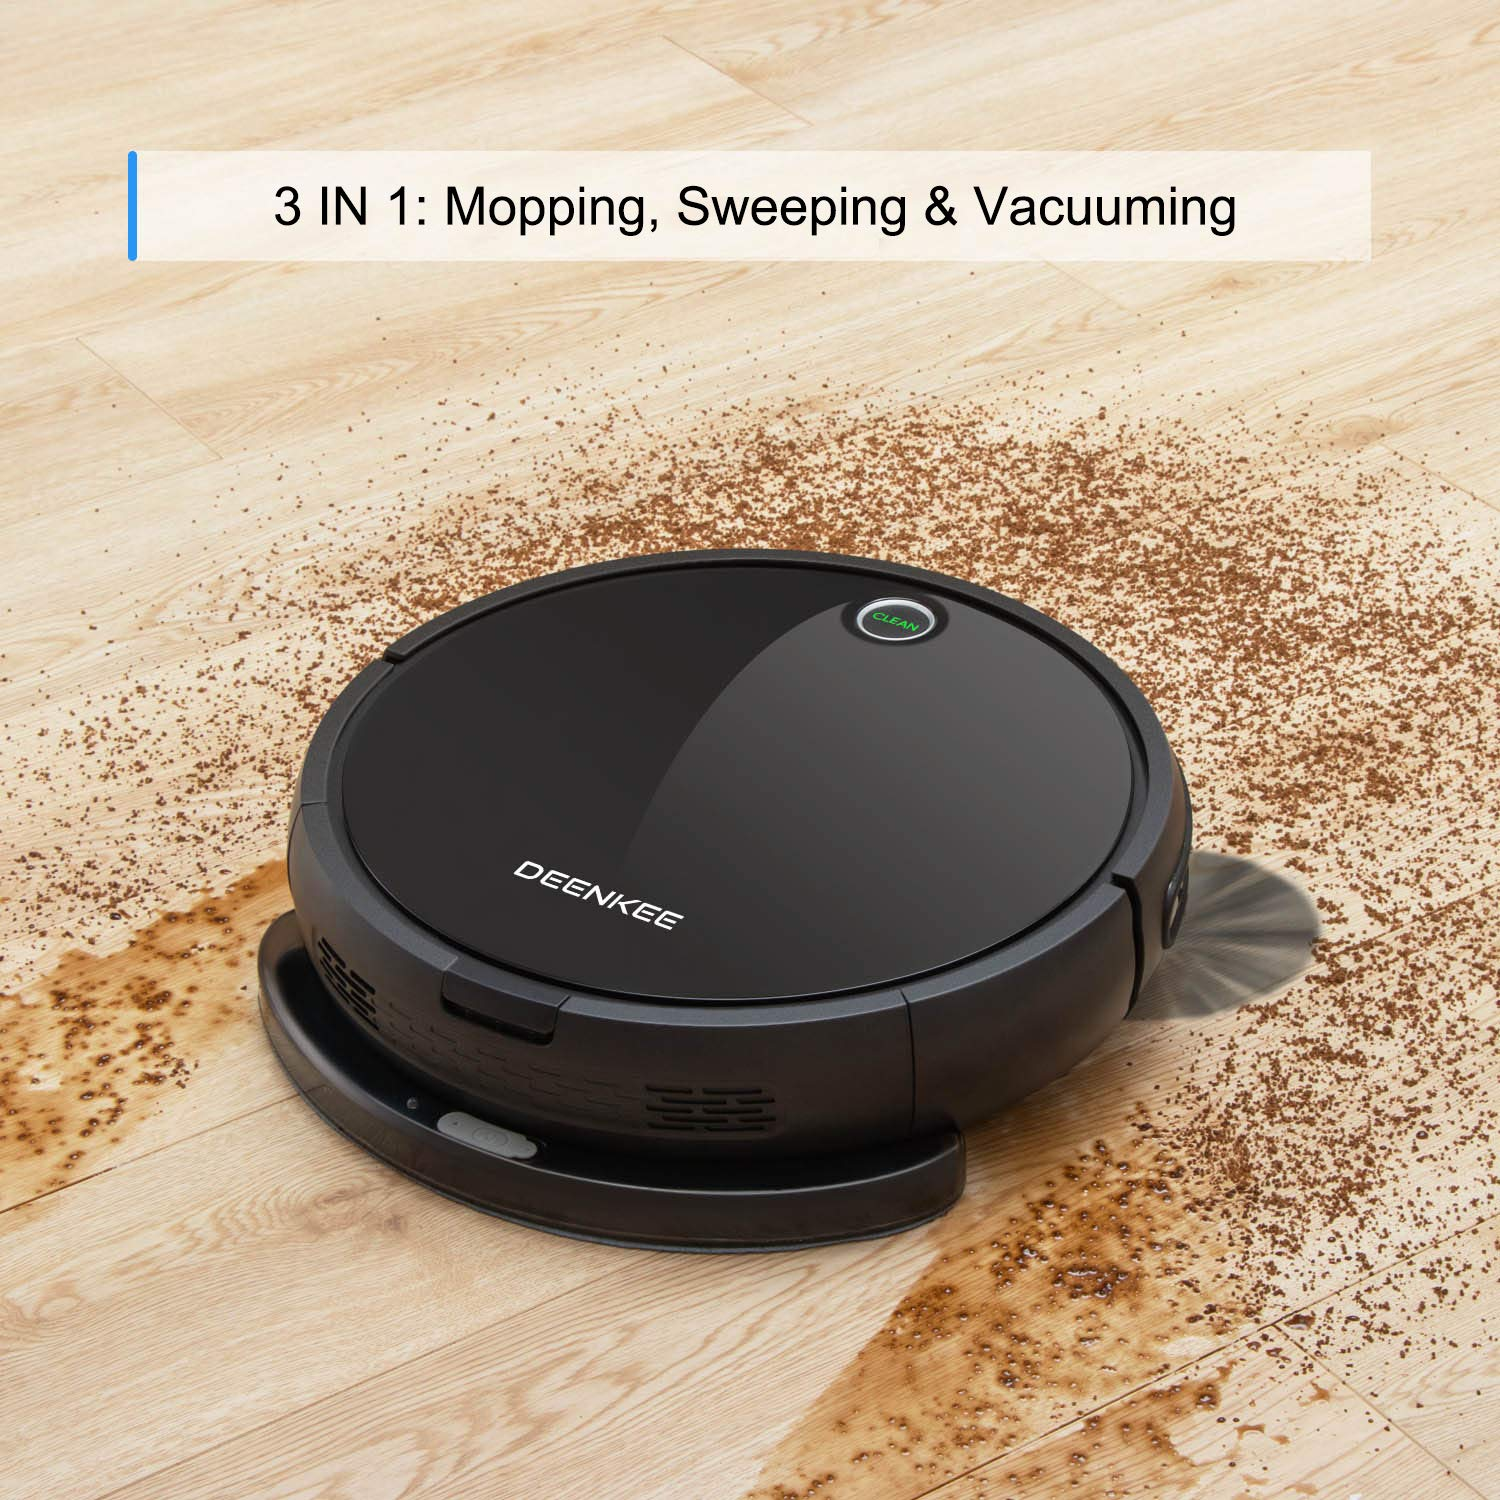 Amazon.com - DEENKEE i7 Robot Vacuum and Mop, 3 in 1 Smart Robotic Vacuum Cleaner Automatic Sweeper for Pet Hair, Carpet, Hardwood Floors, Tile -